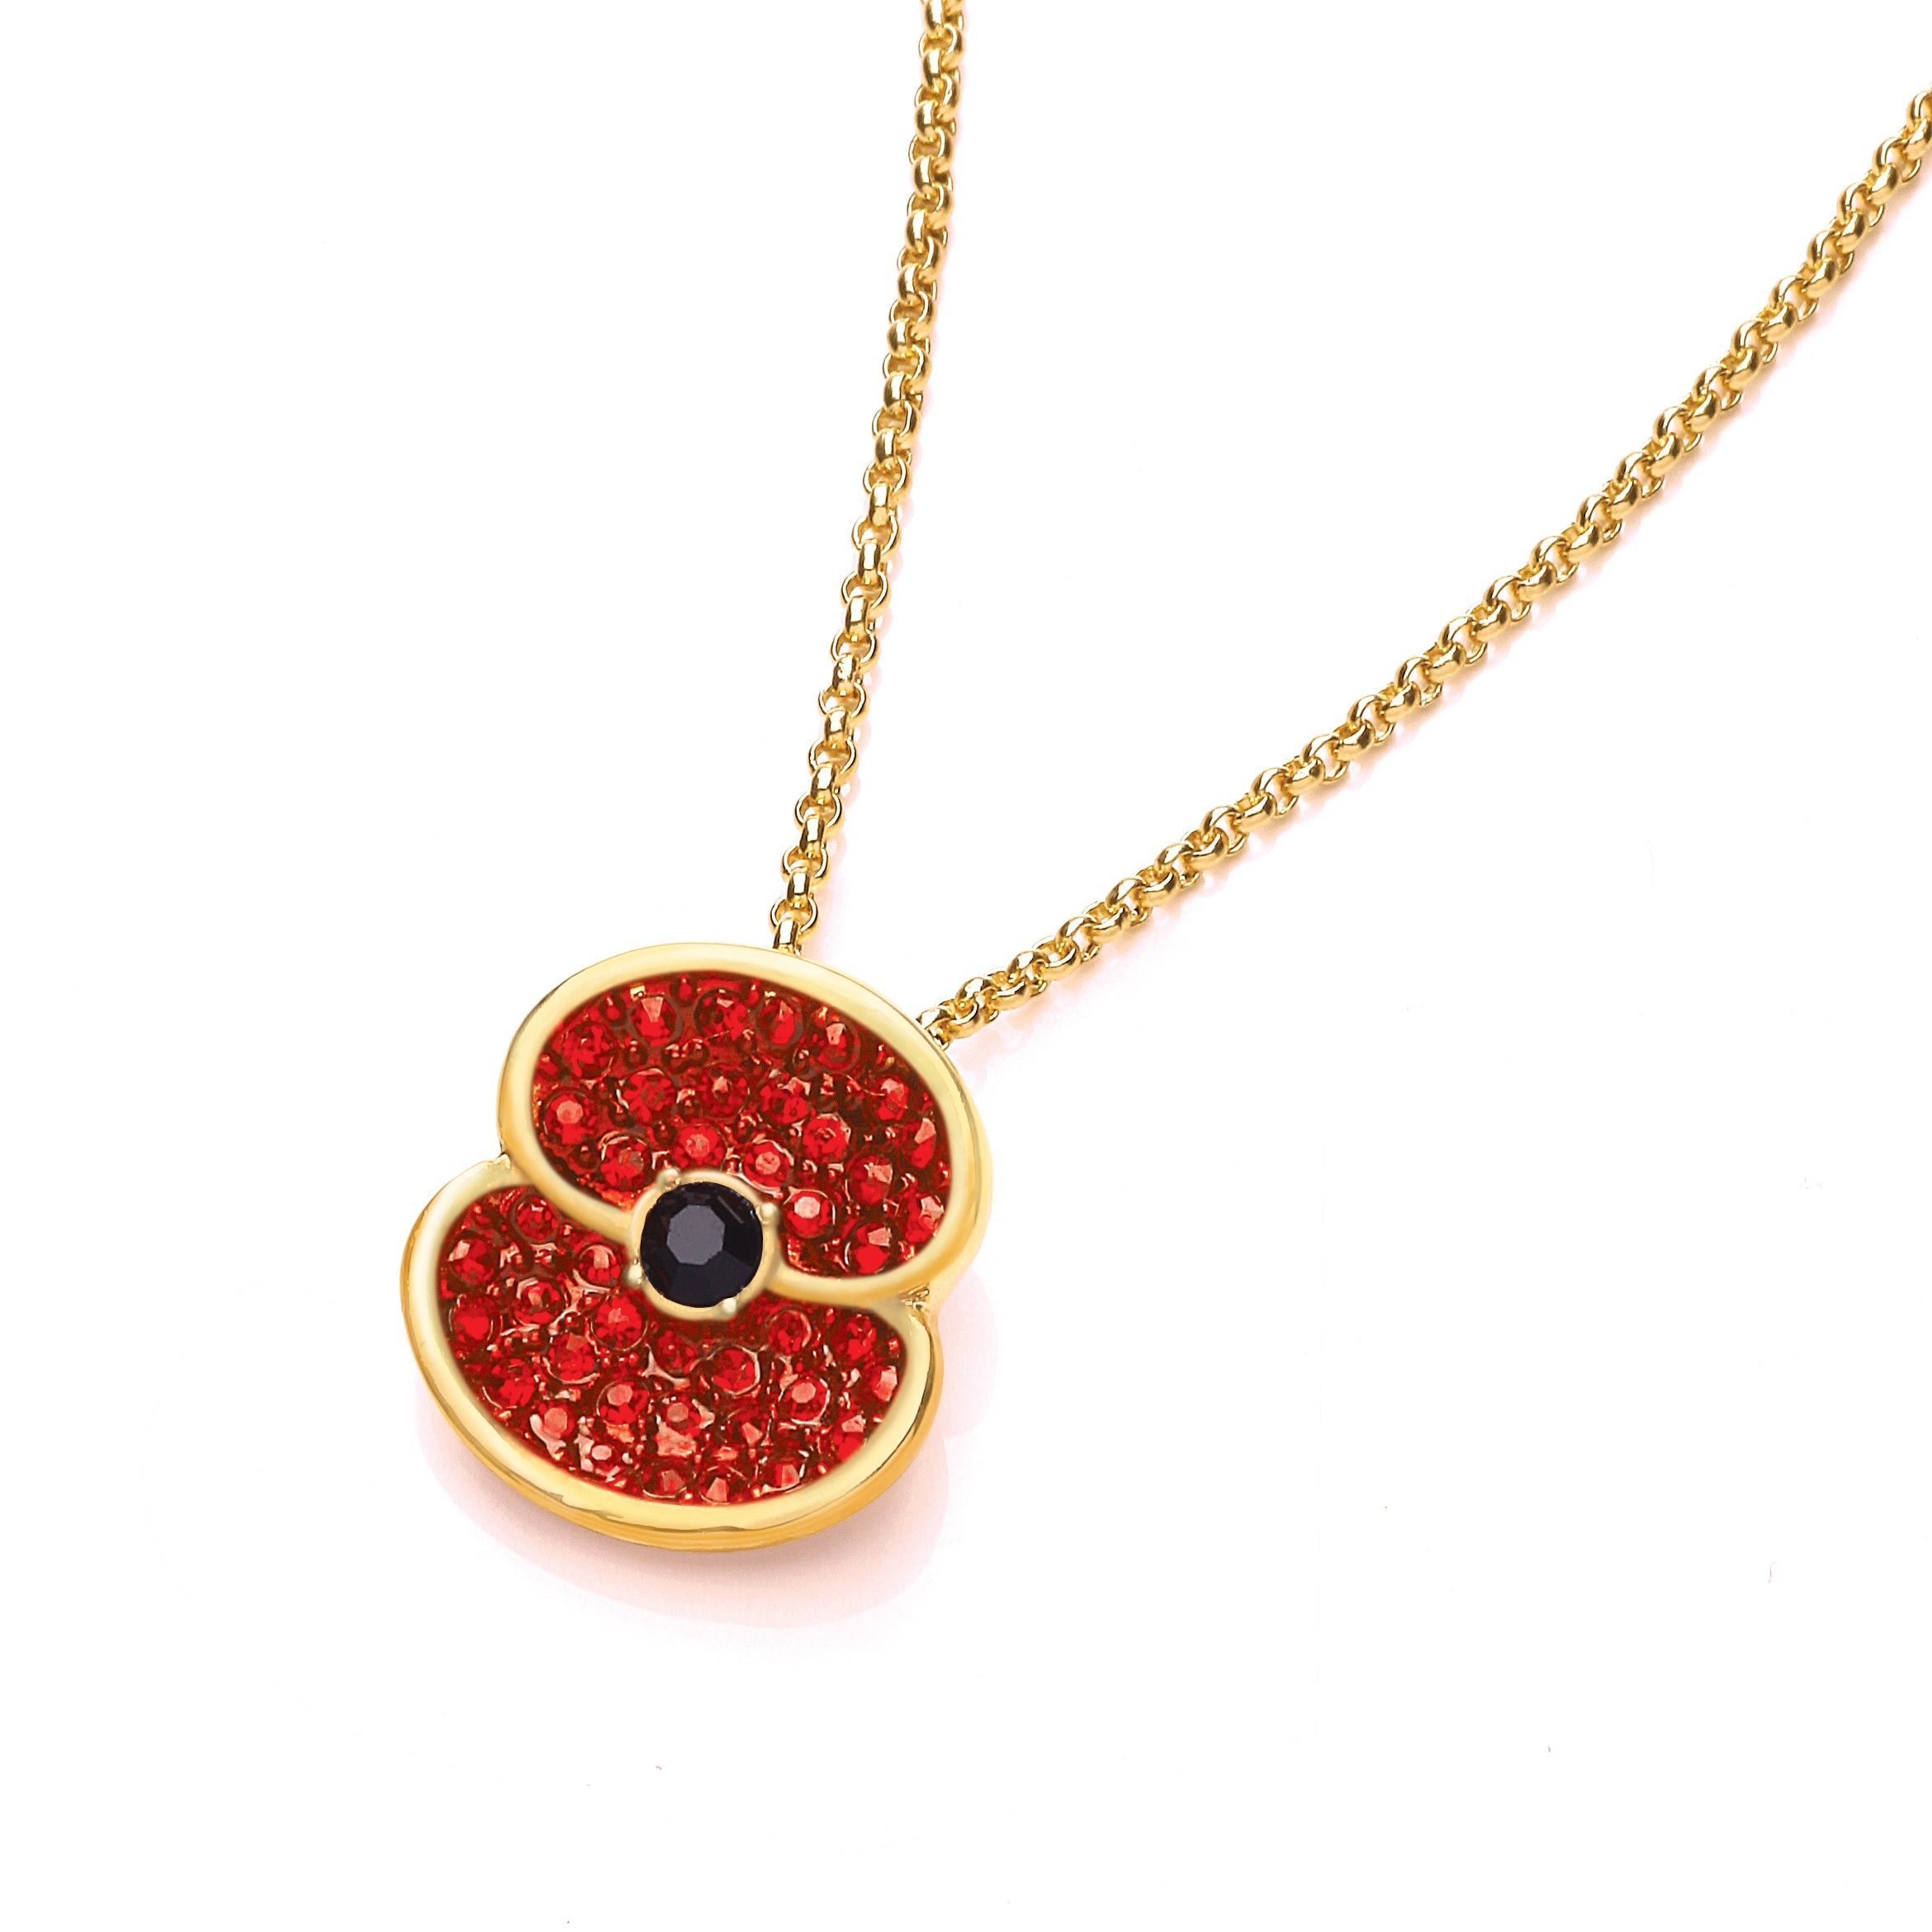 Buckley Sparkle Poppy Pendant Poppy brooches, Poppy